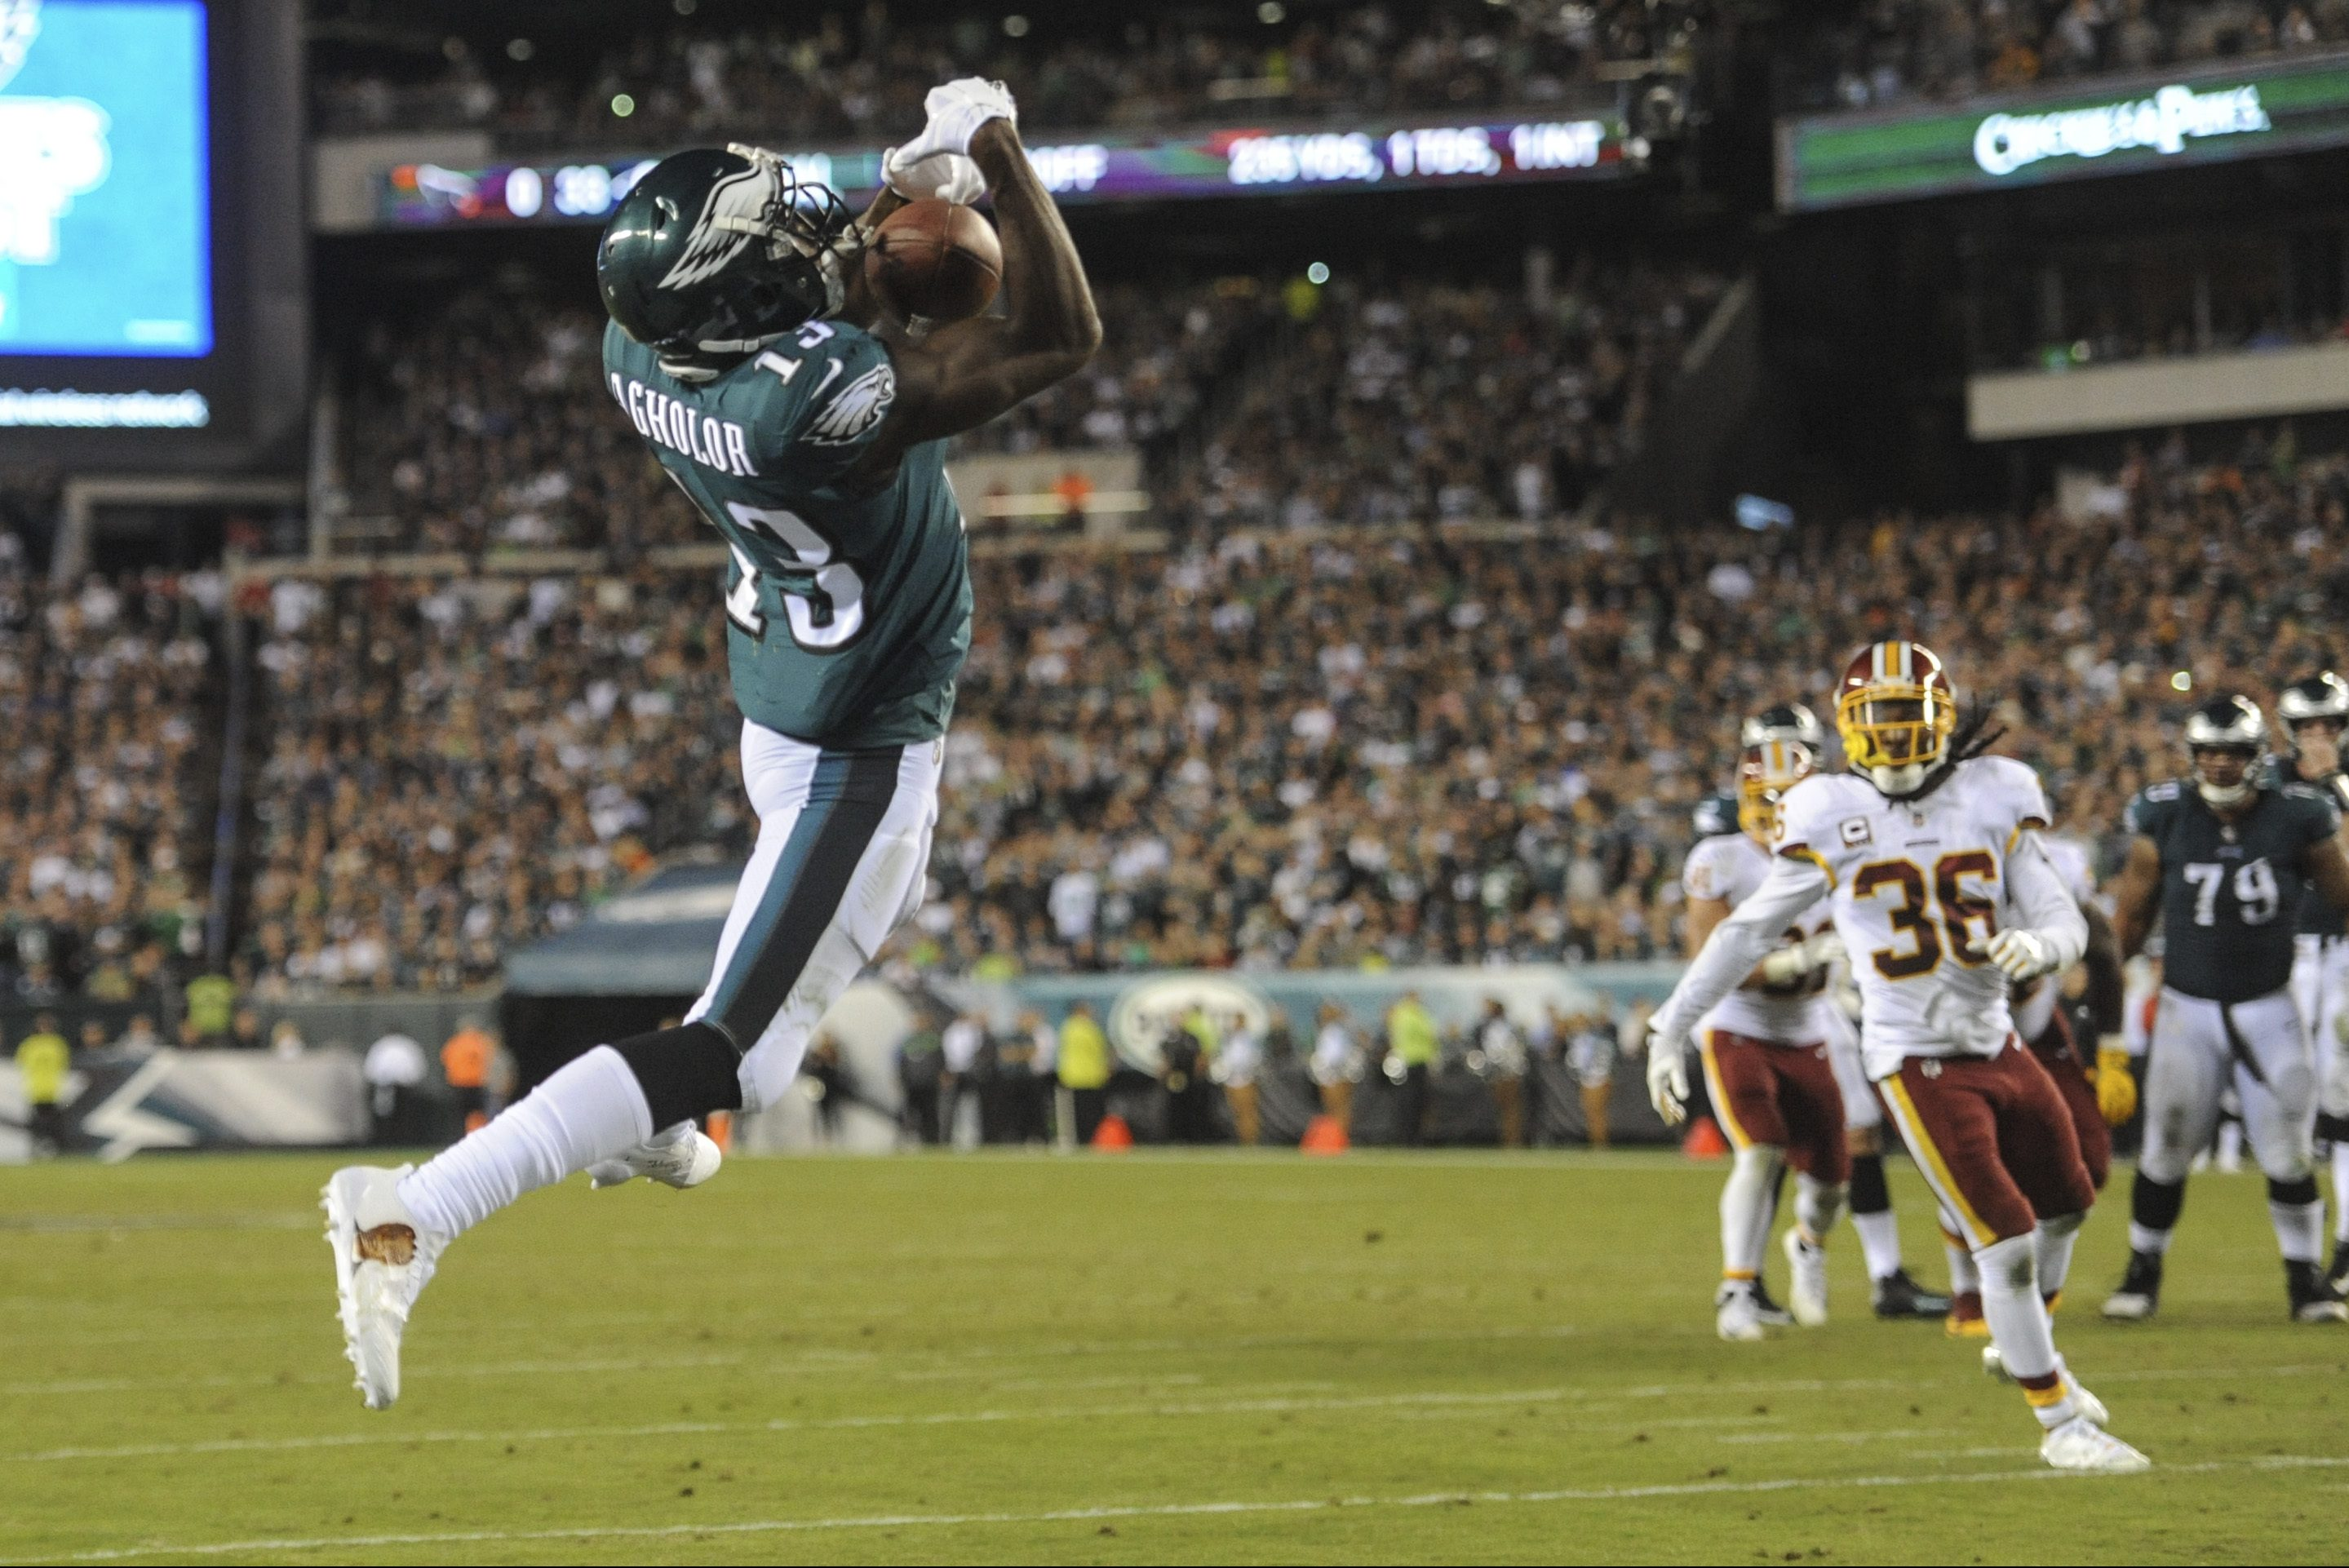 Eagles wide receiver Nelson Agholor makes a leaping catch for a 10-yard touchdown in the 4th quarter of the game against the Washington Redskins at Lincoln Financial Field on Monday.